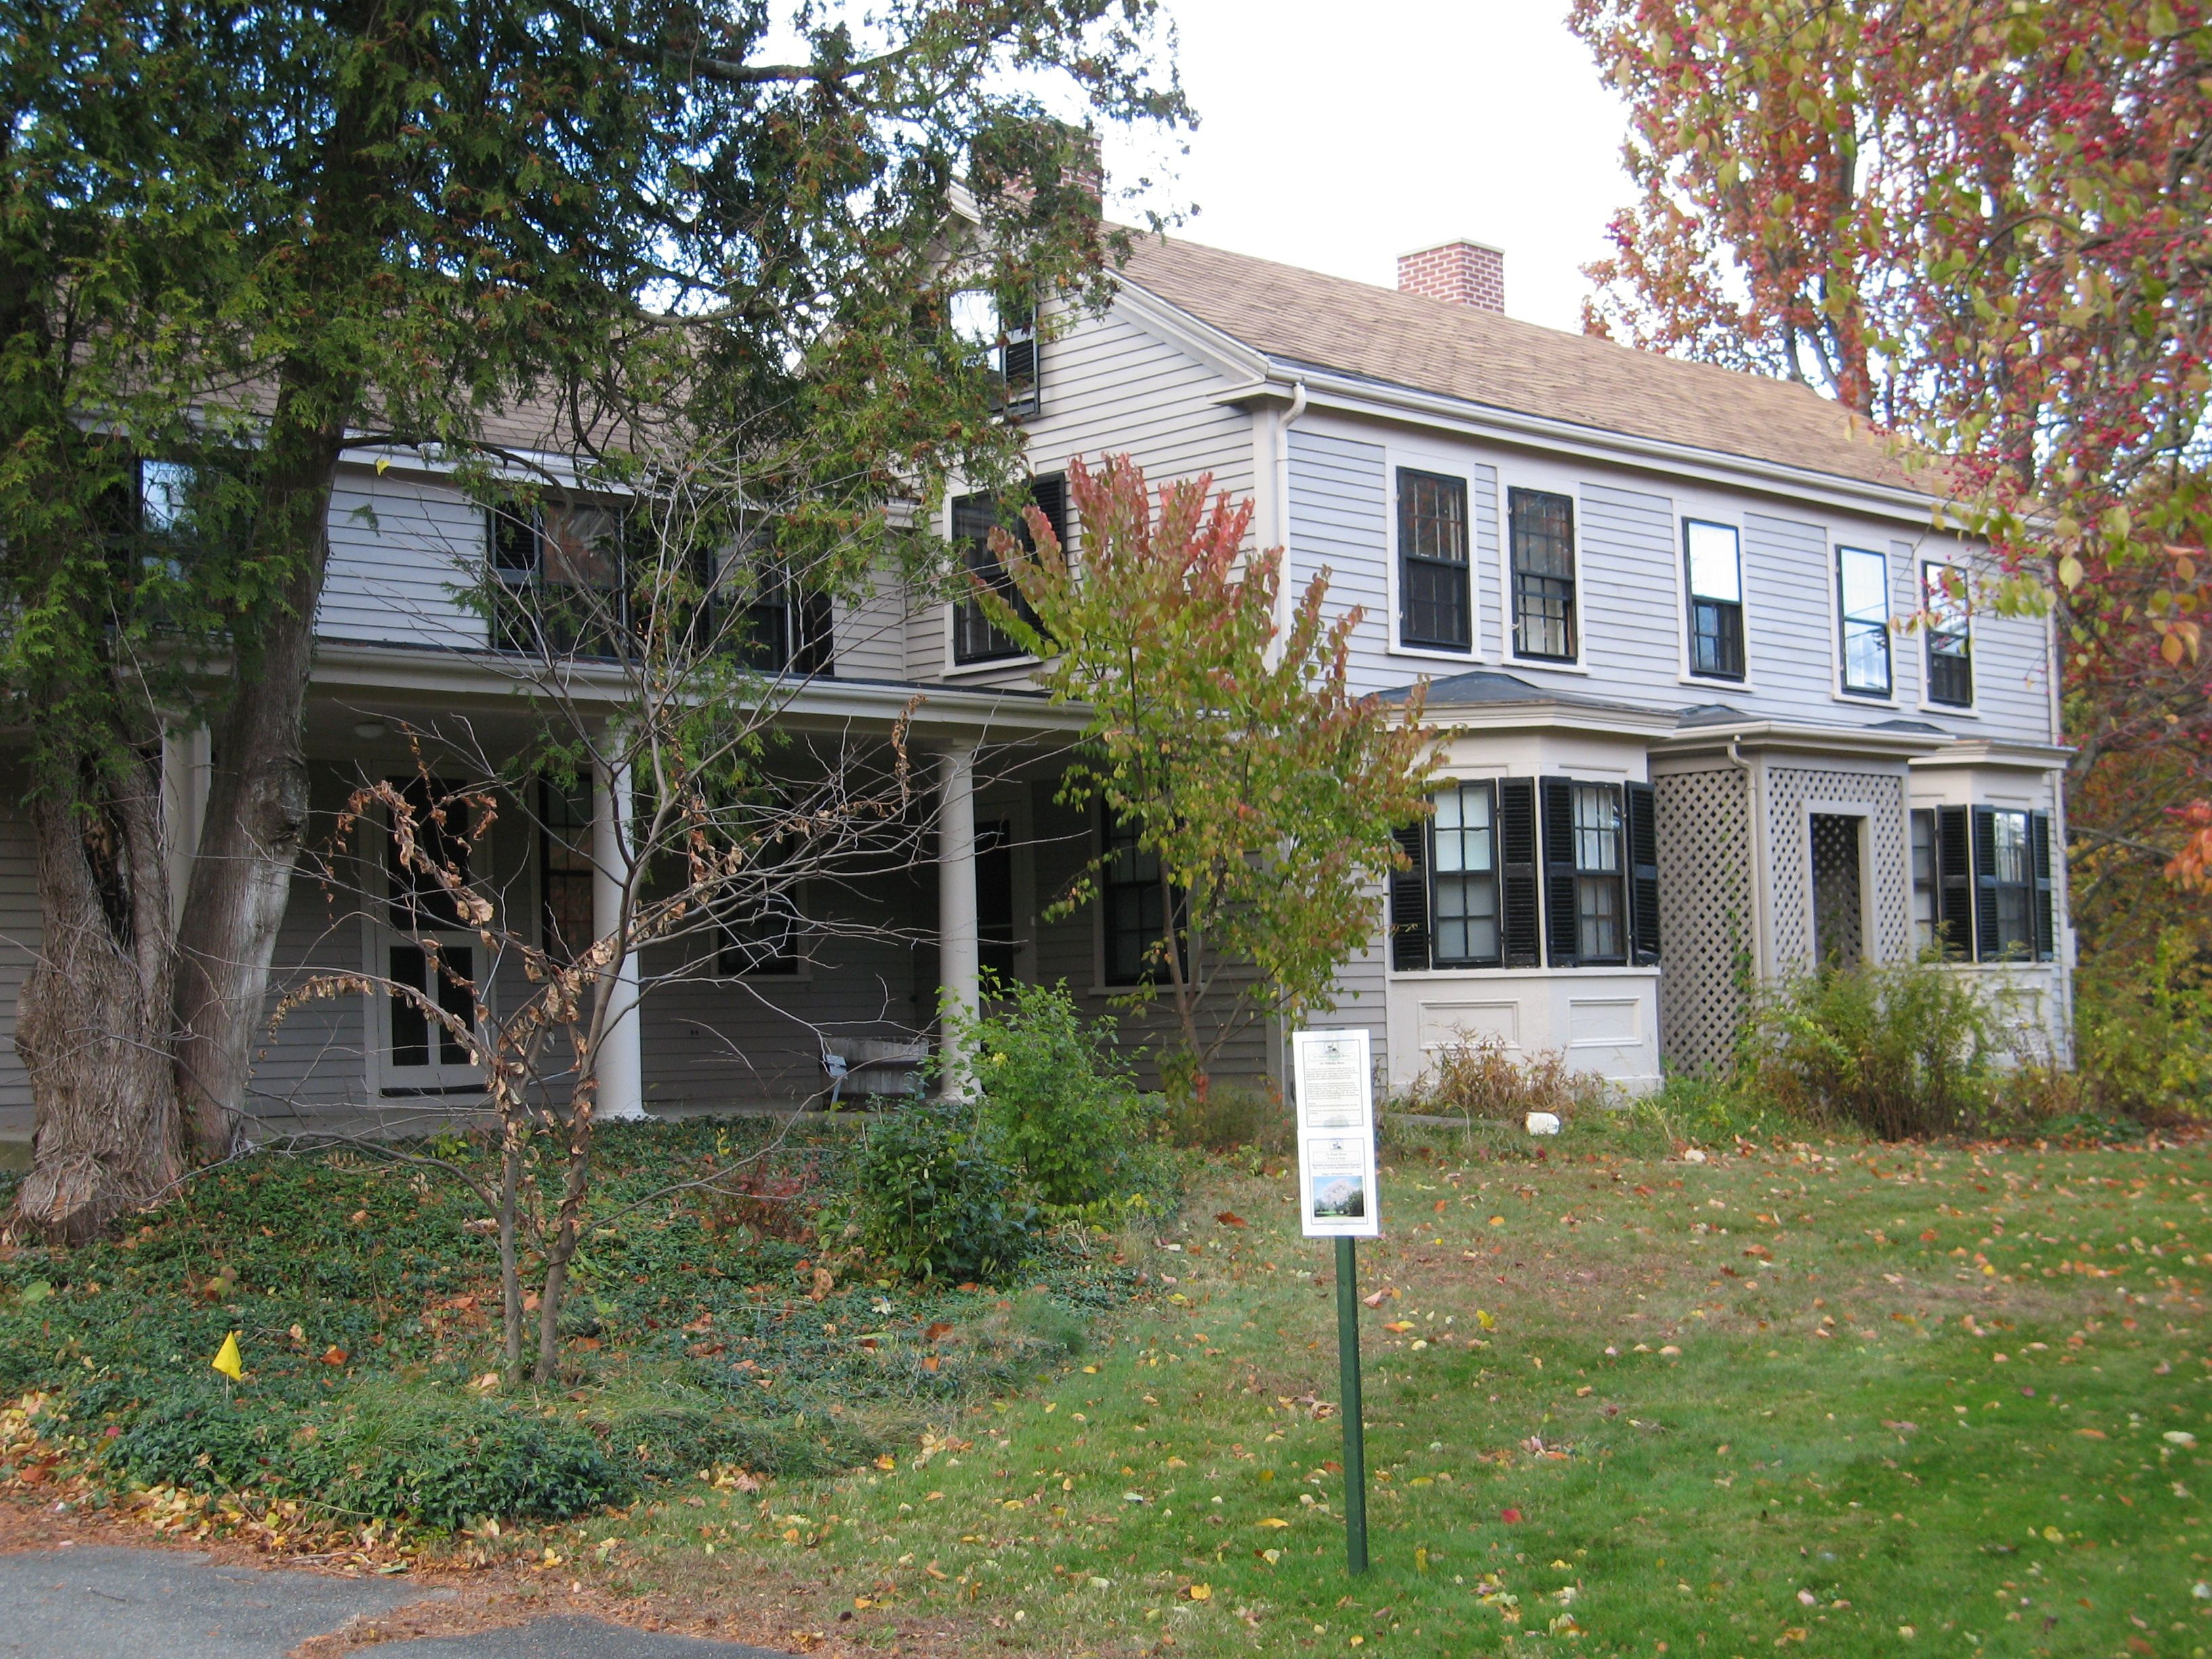 House at 131 Wellesley Street